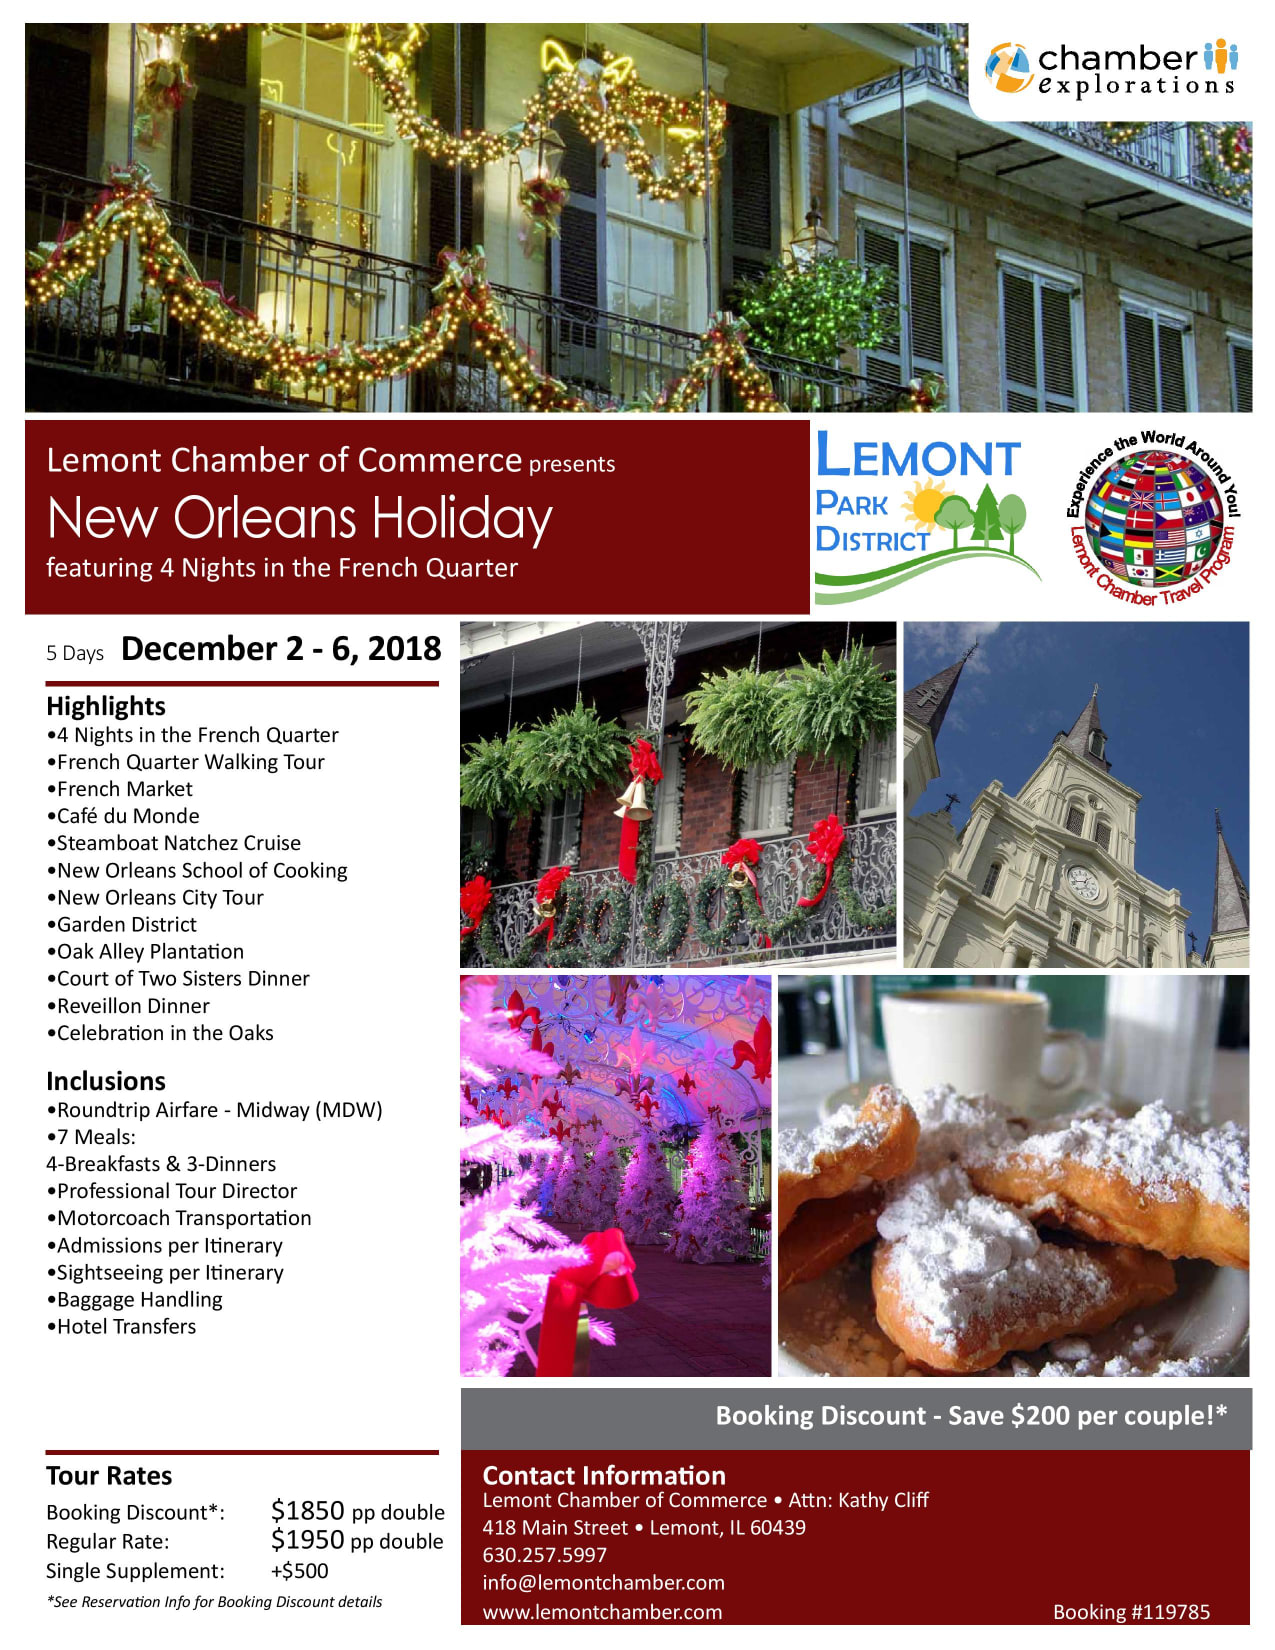 NEW-ORLEANS-HOLIDAY---Lemont-C-of-C---02DEC18---MDW-page-001-w1275.jpg